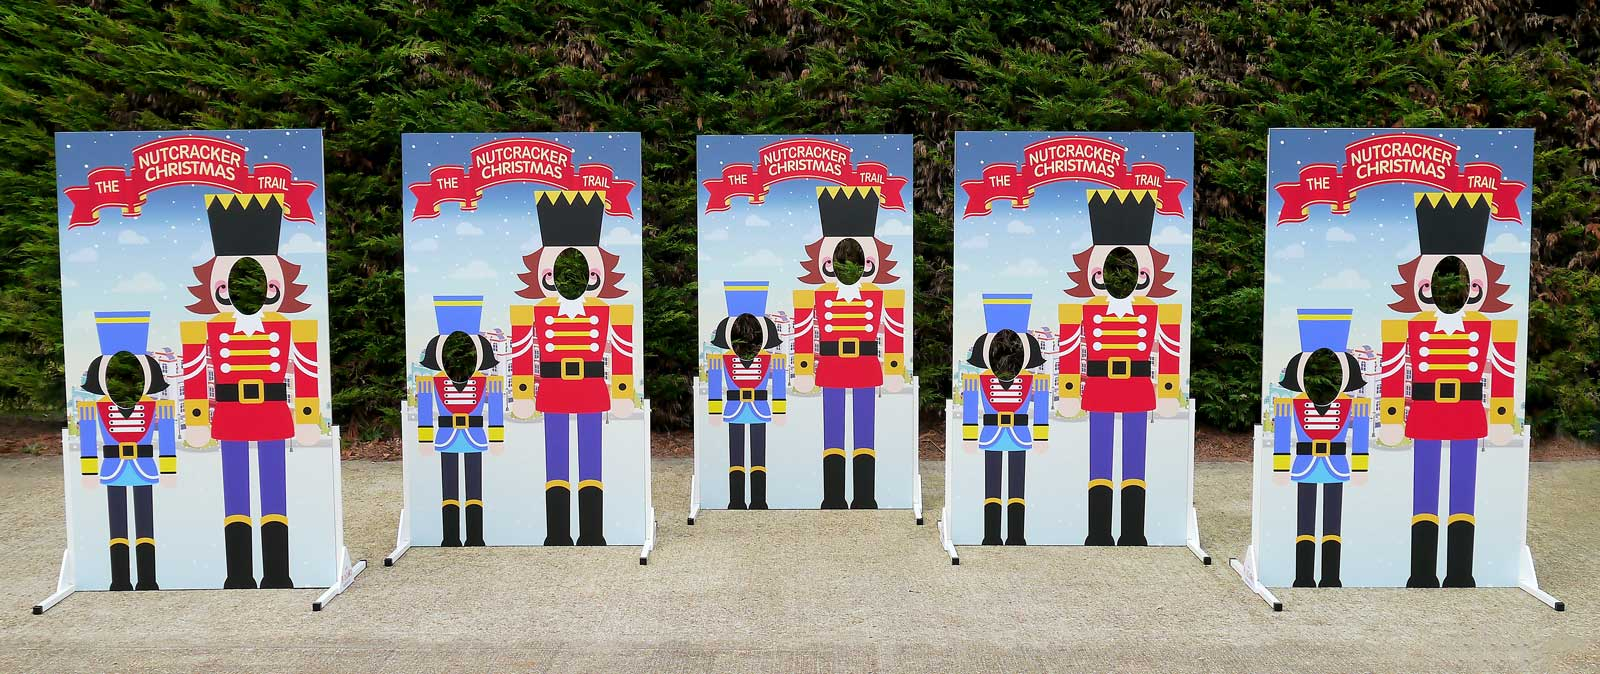 Christmas Nutcracker Trail photo board